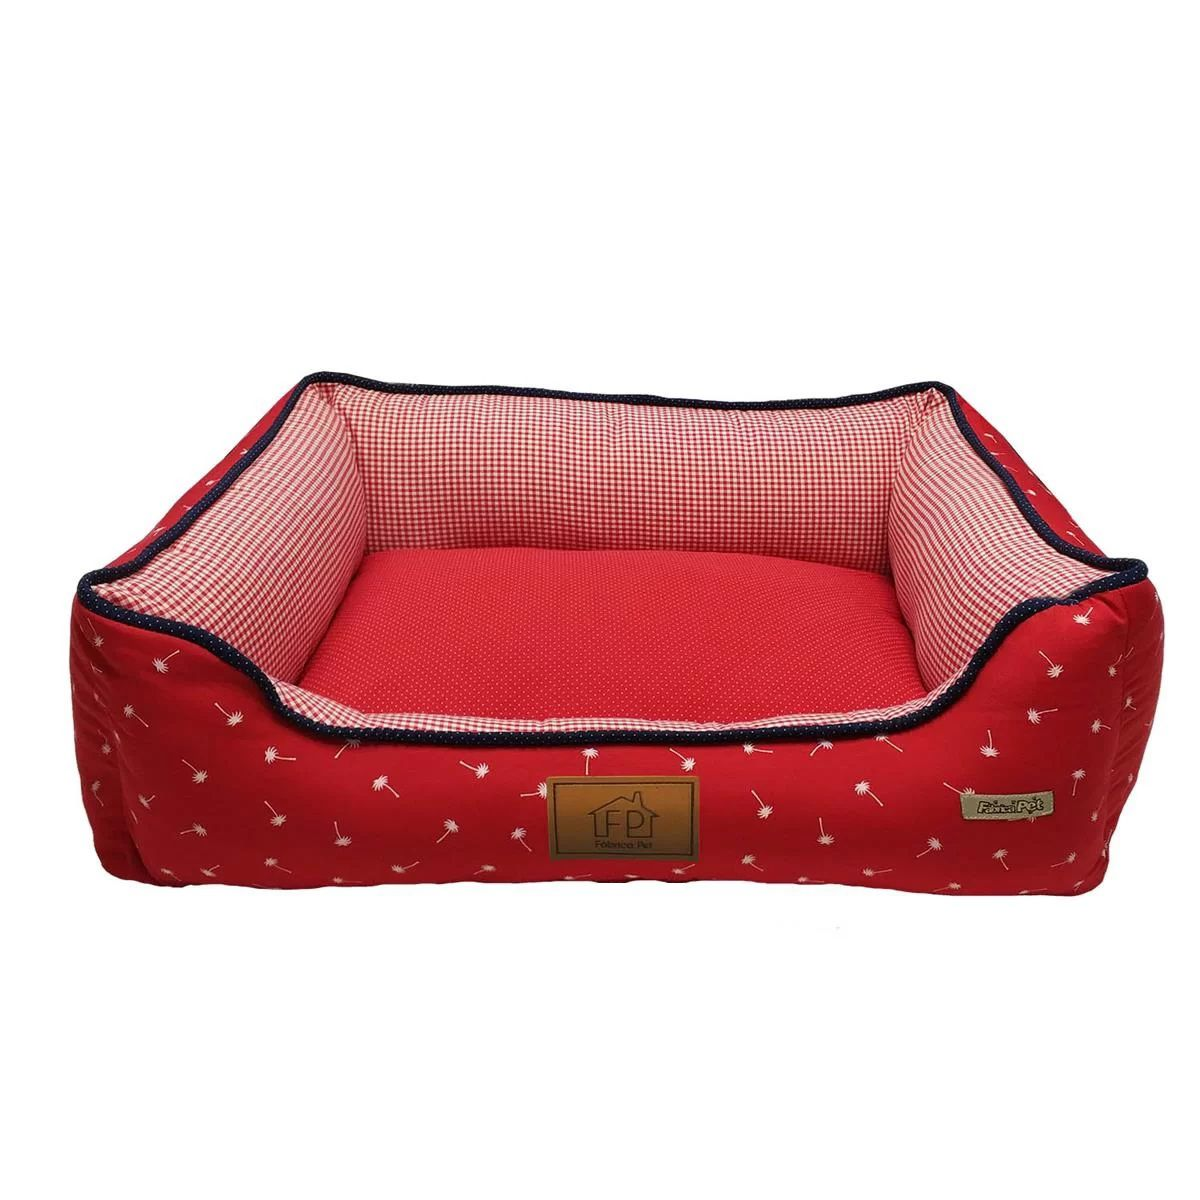 Cama Navy - Fábrica Pet